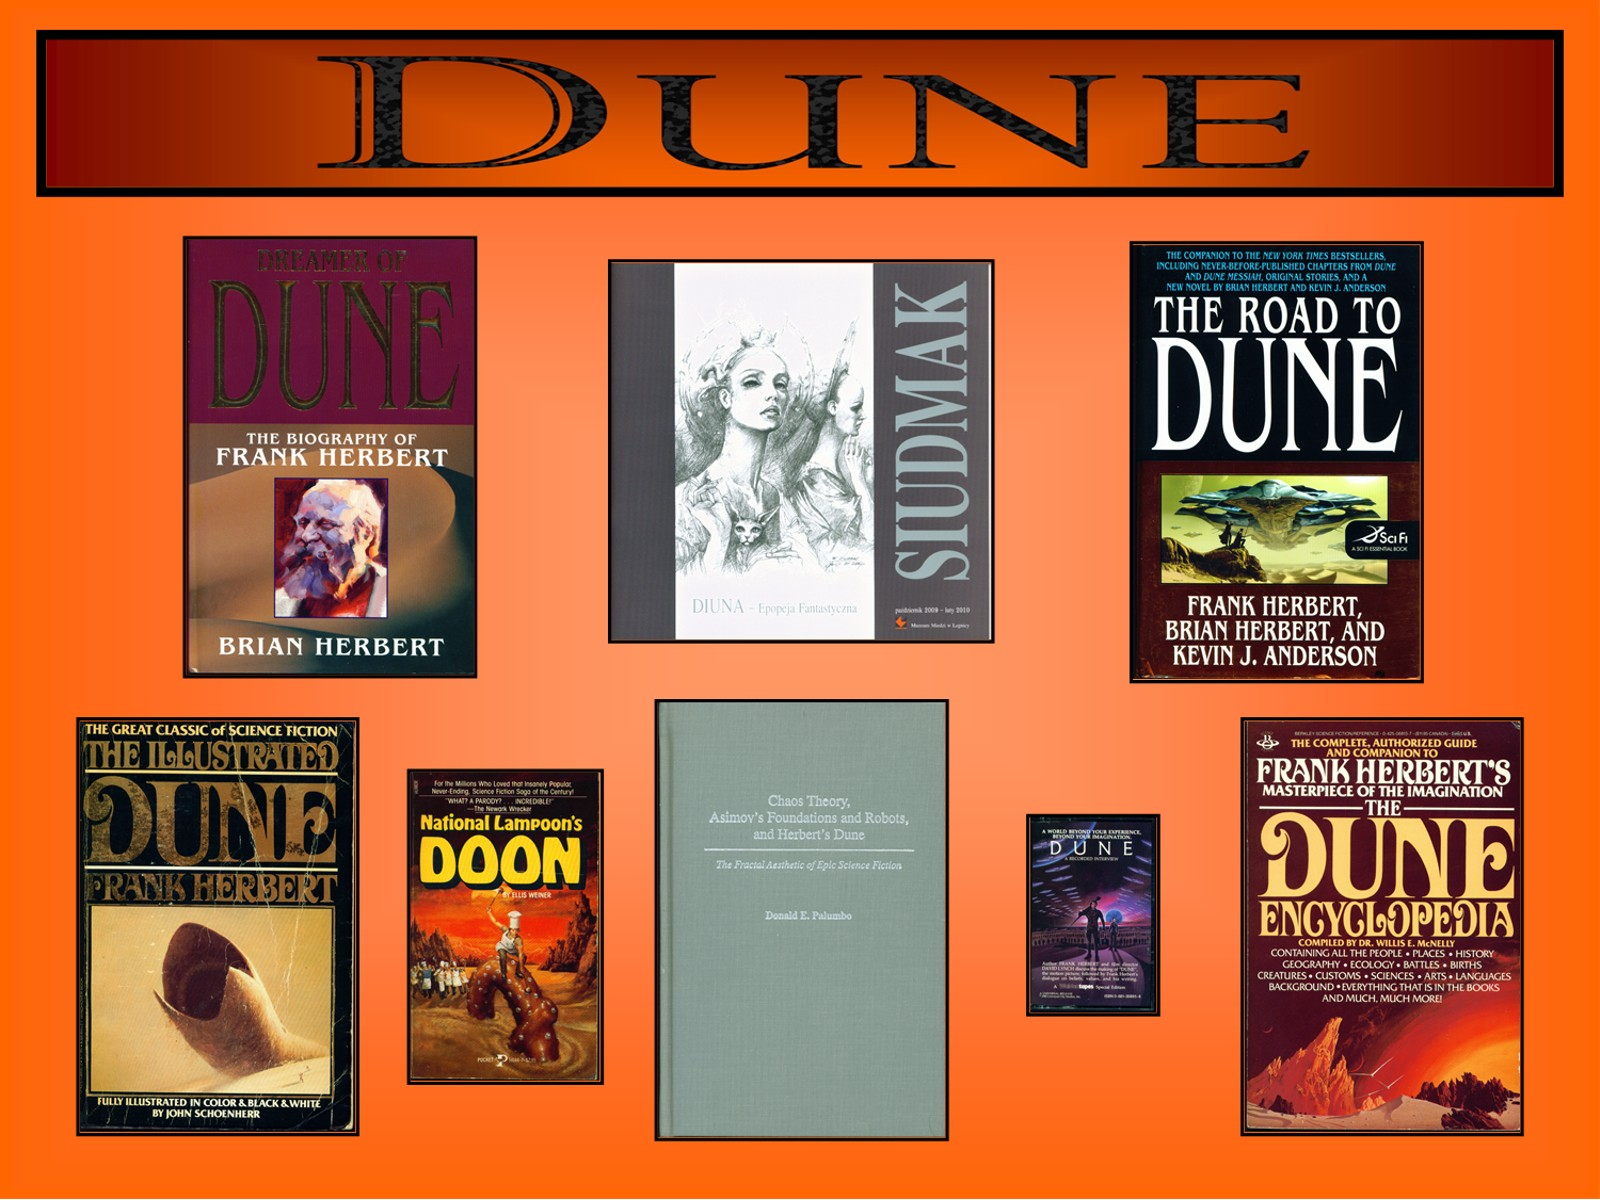 Heretics of dune analysis essay